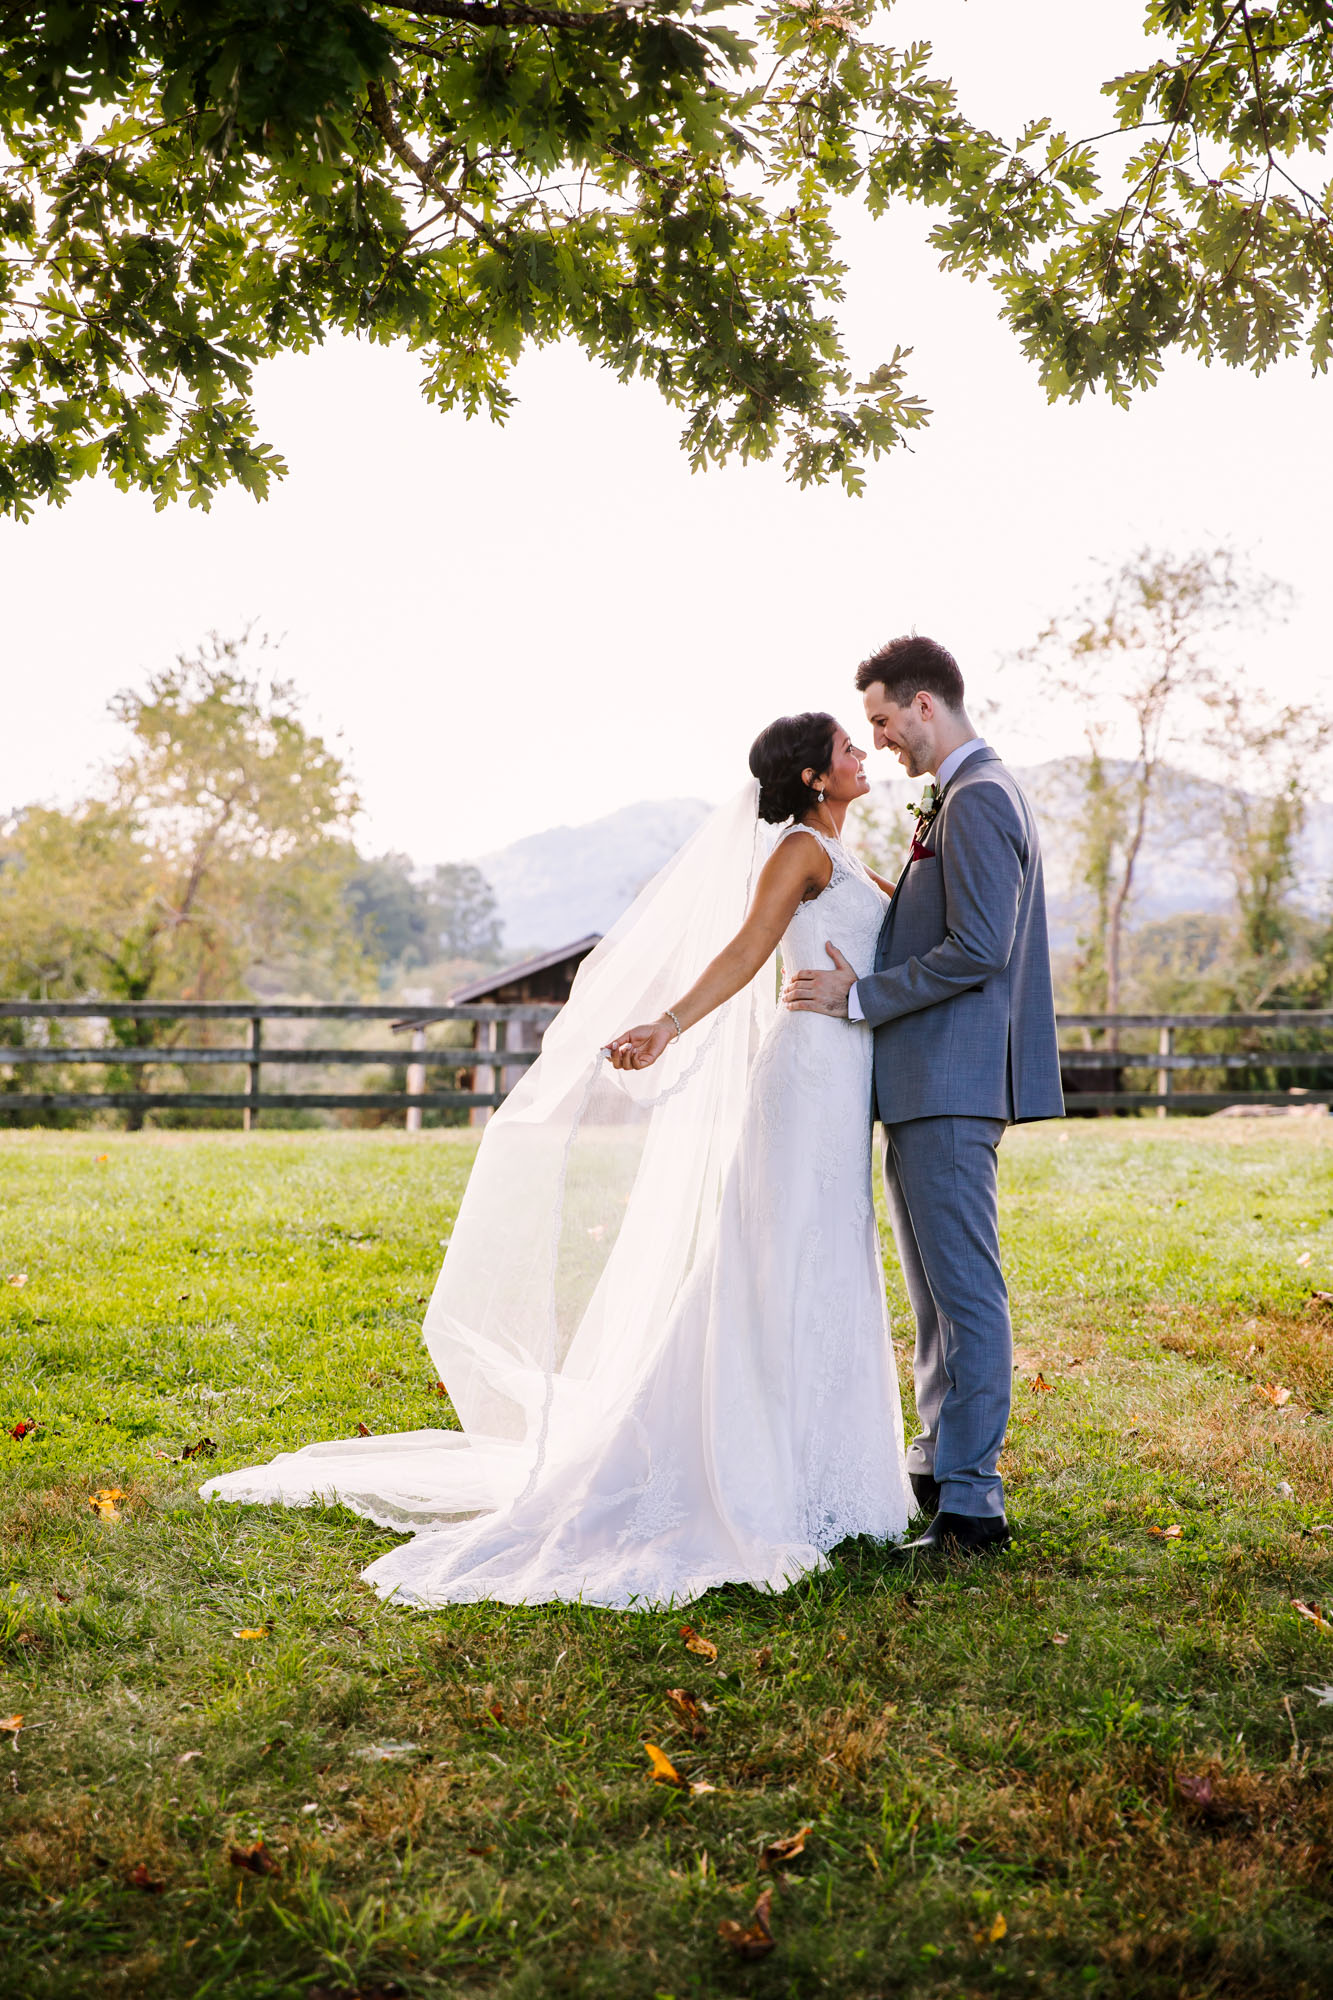 Waynesville NC Wedding Photography | Bride and Groom Portrait under the Tree on the Farm